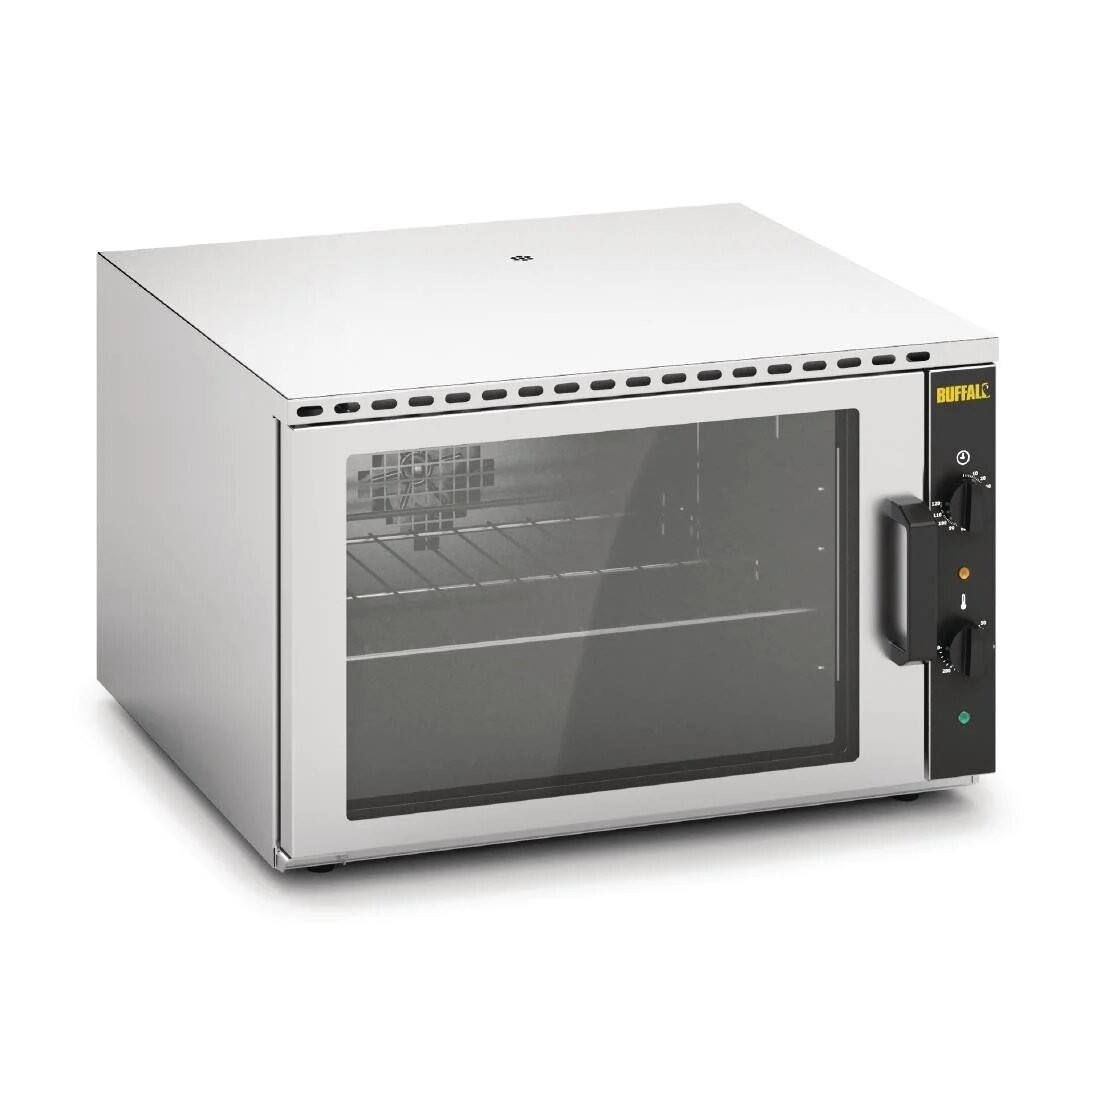 Buffalo CW863 Convection Oven with a 4 x 2/3 GN Capacity